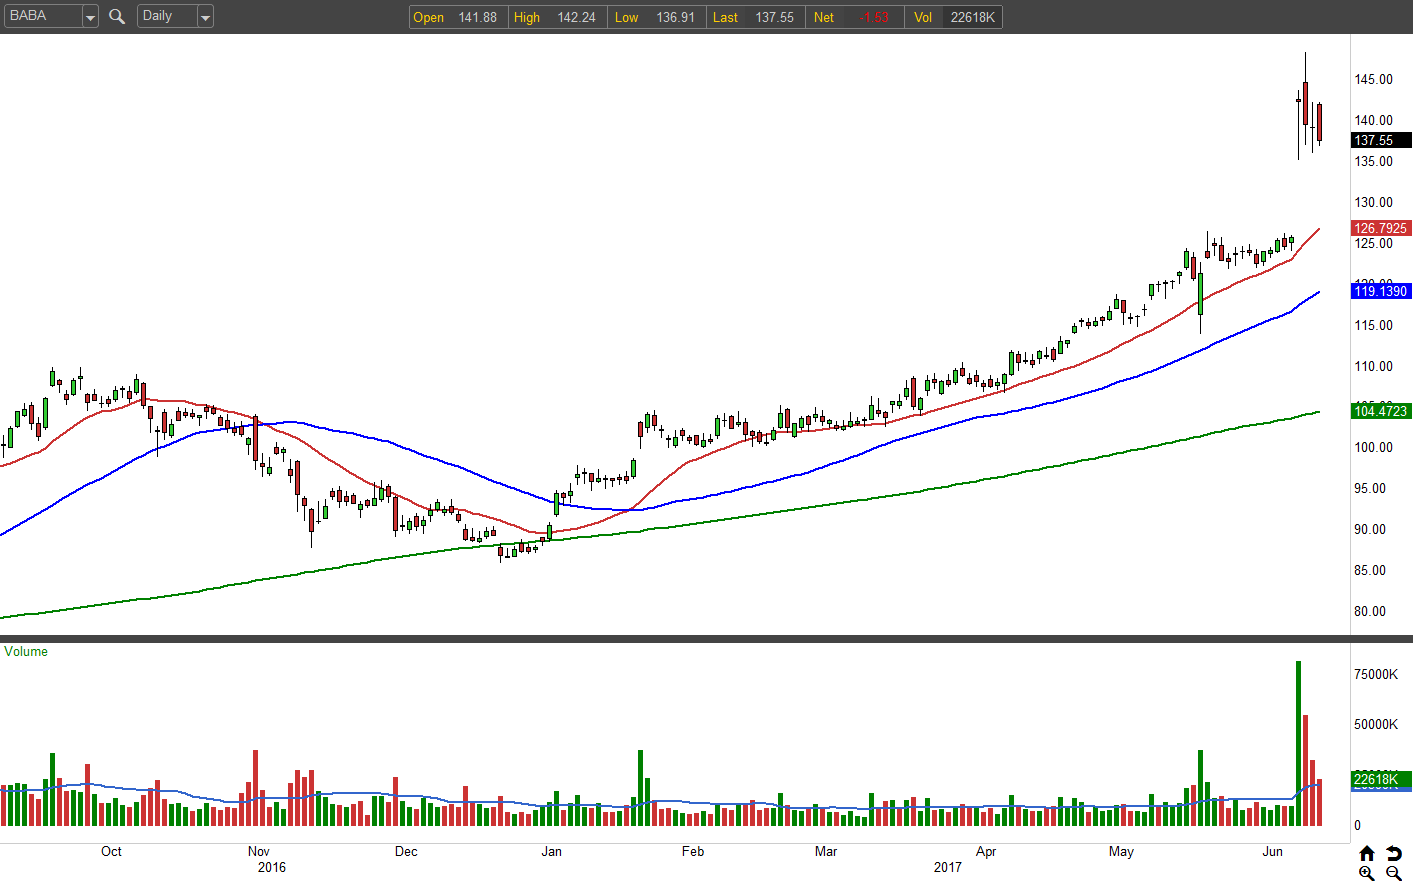 Alibaba Group Holding Limited (BABA) Receives